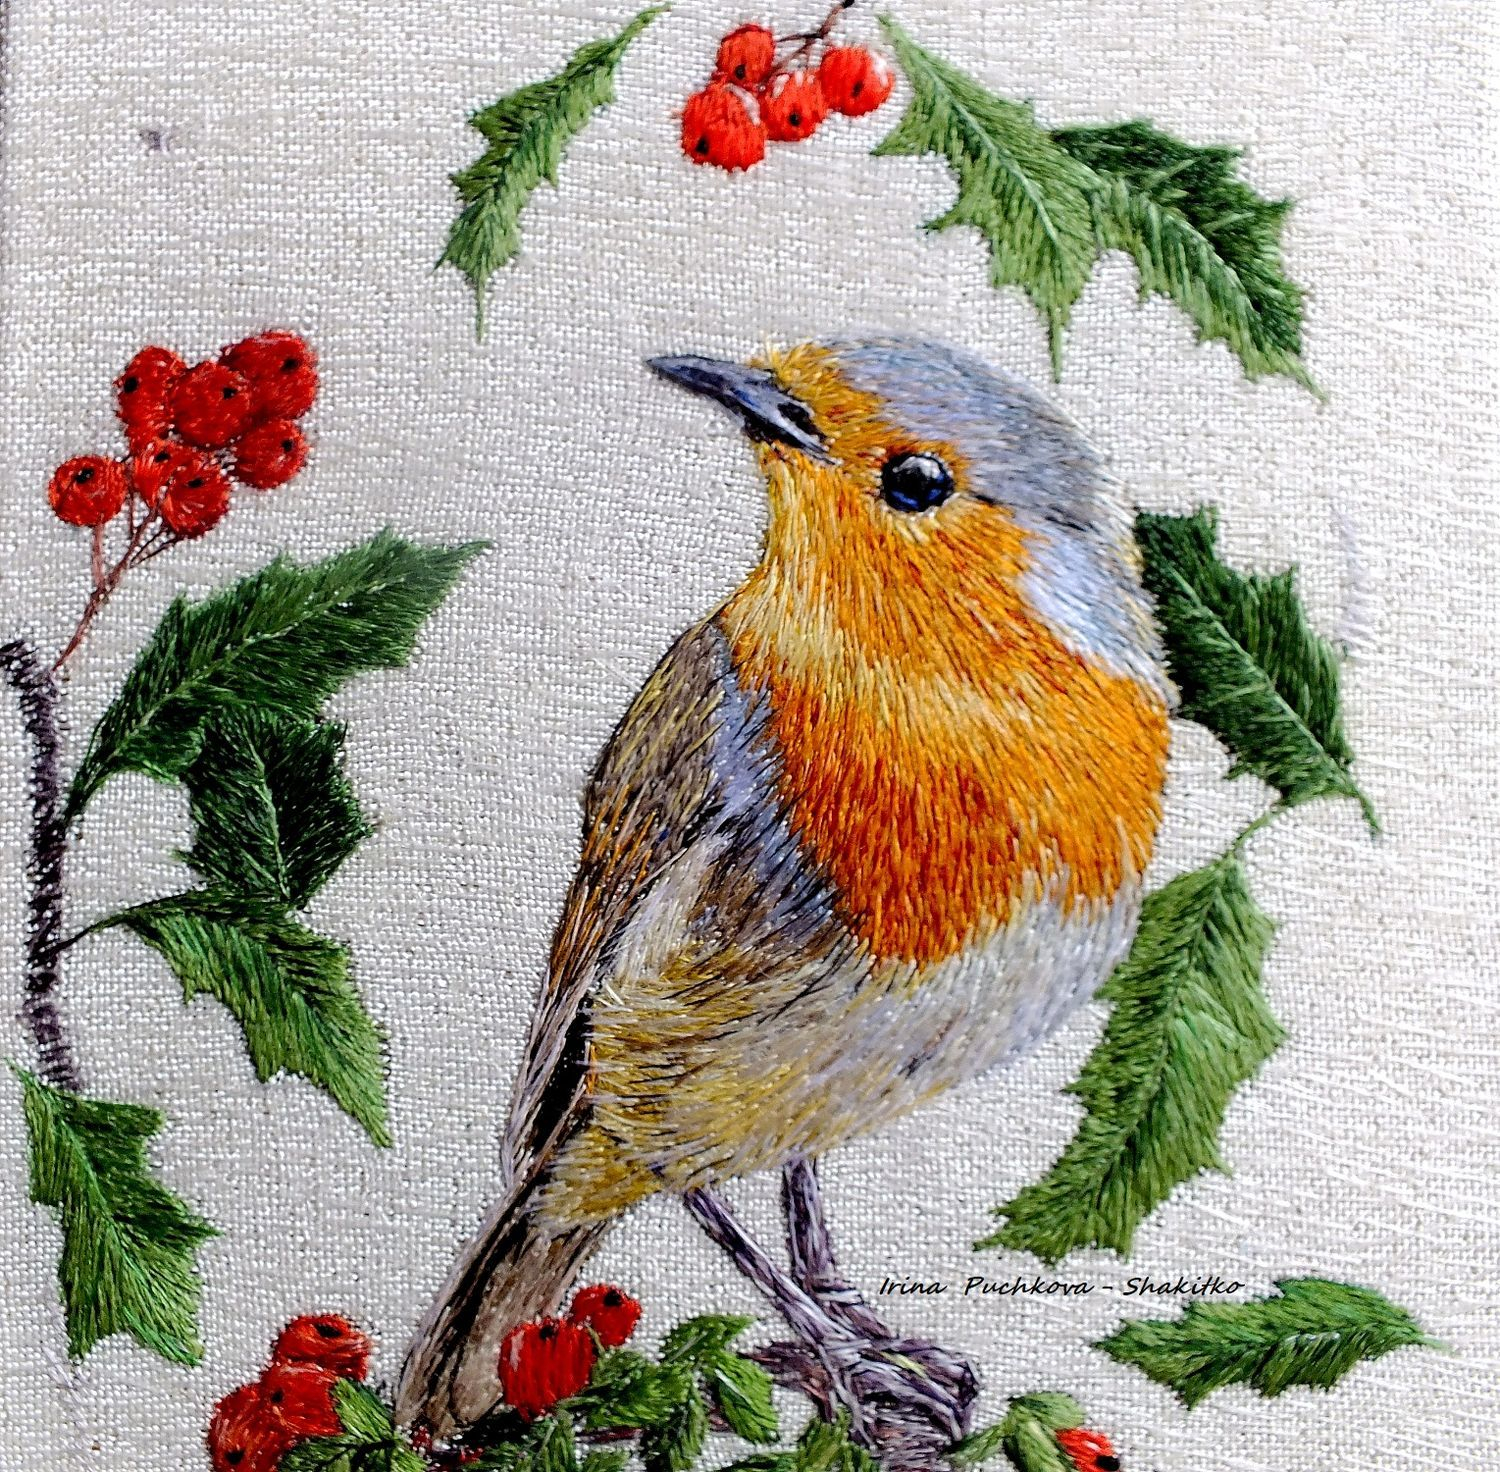 Embroidery Bird Patterns Embroidered Stitch Pattern Bird Robin Shop Online On Livemaster With Shipping Ekis7com Novorossiysk